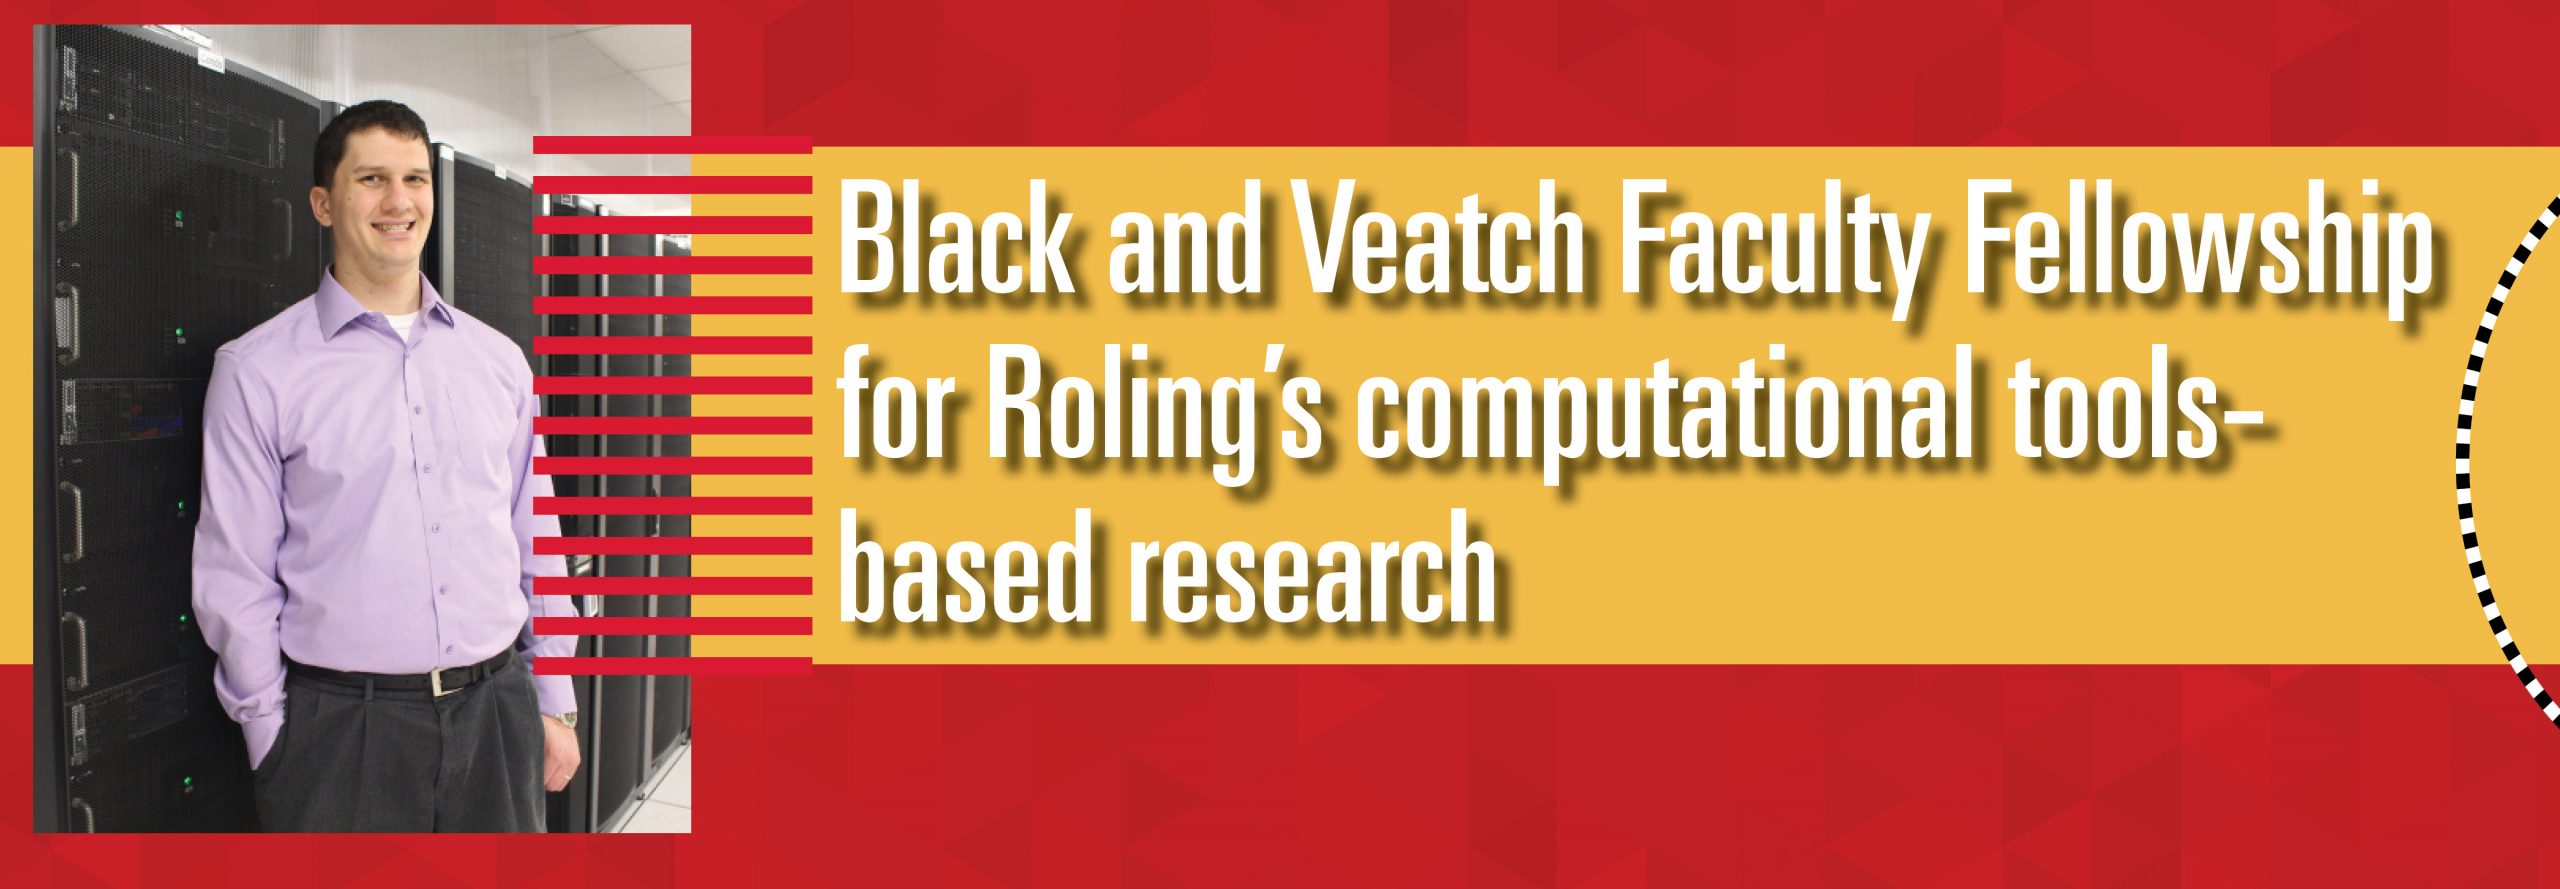 Black and Veatch Faculty Fellowship for Roling's computational tolls-based research